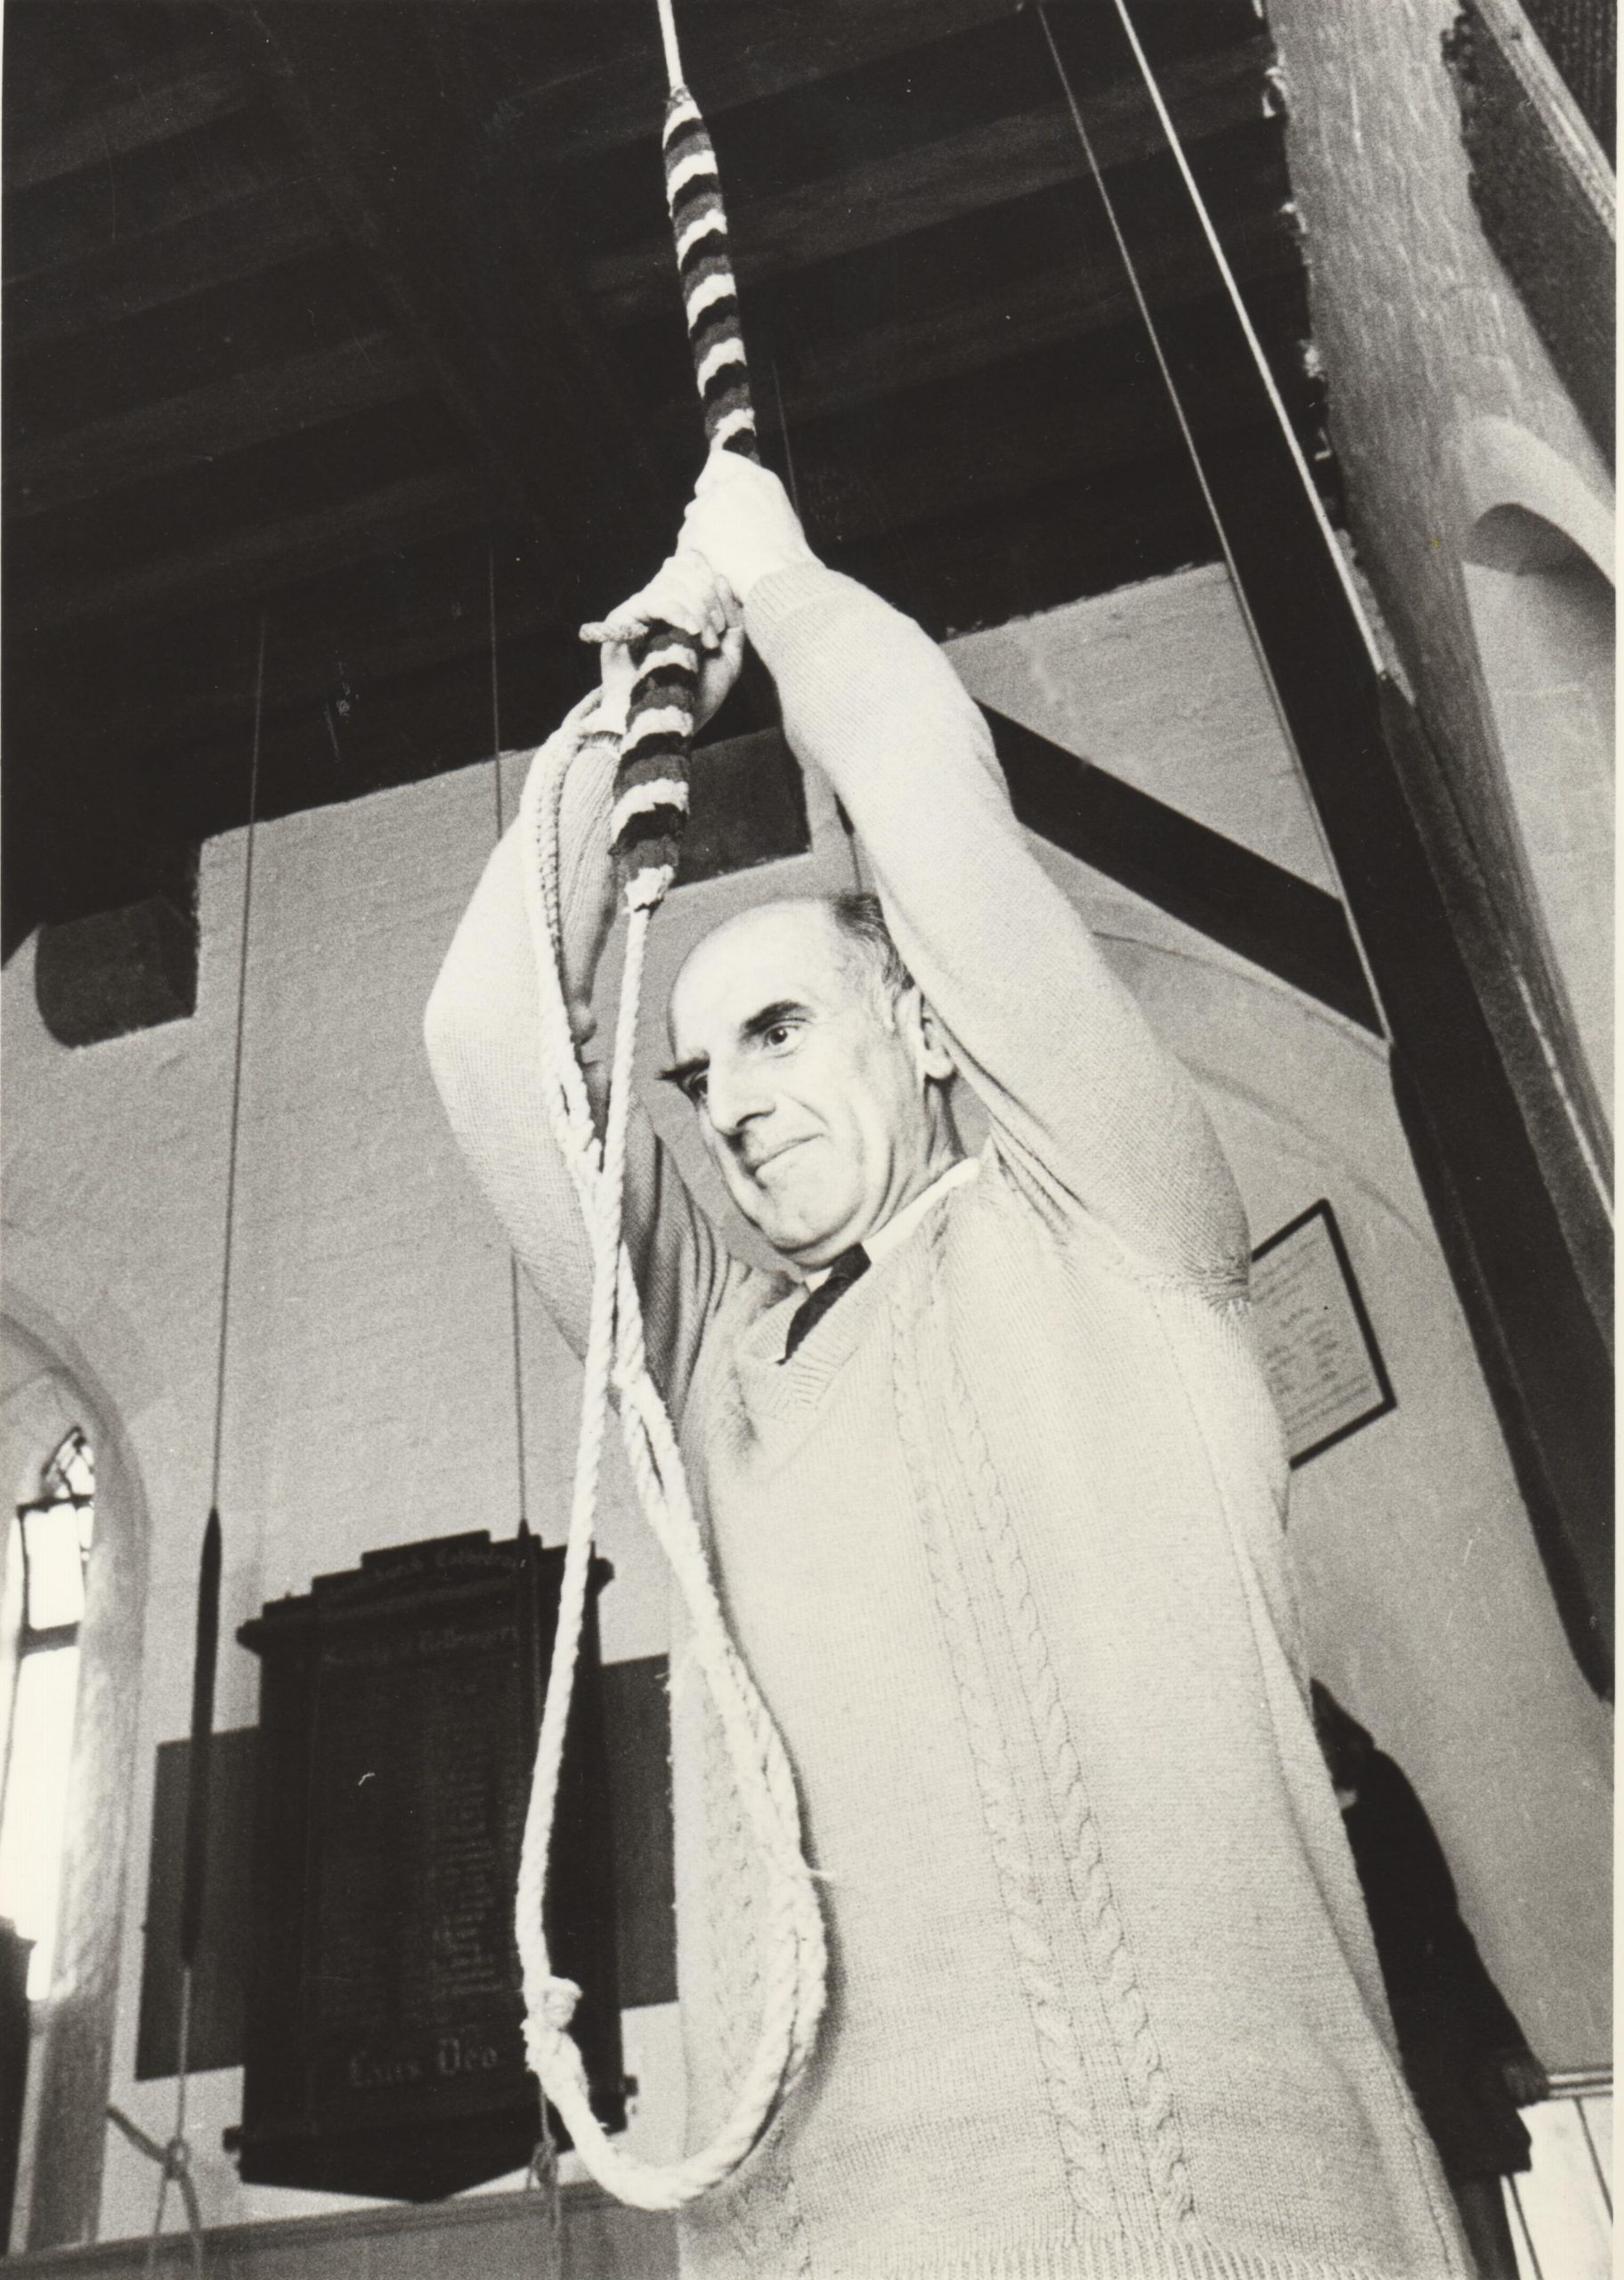 image shows Bob Bennett pulling the rope to ring the bell at the Christchurch Cathedral 1980.